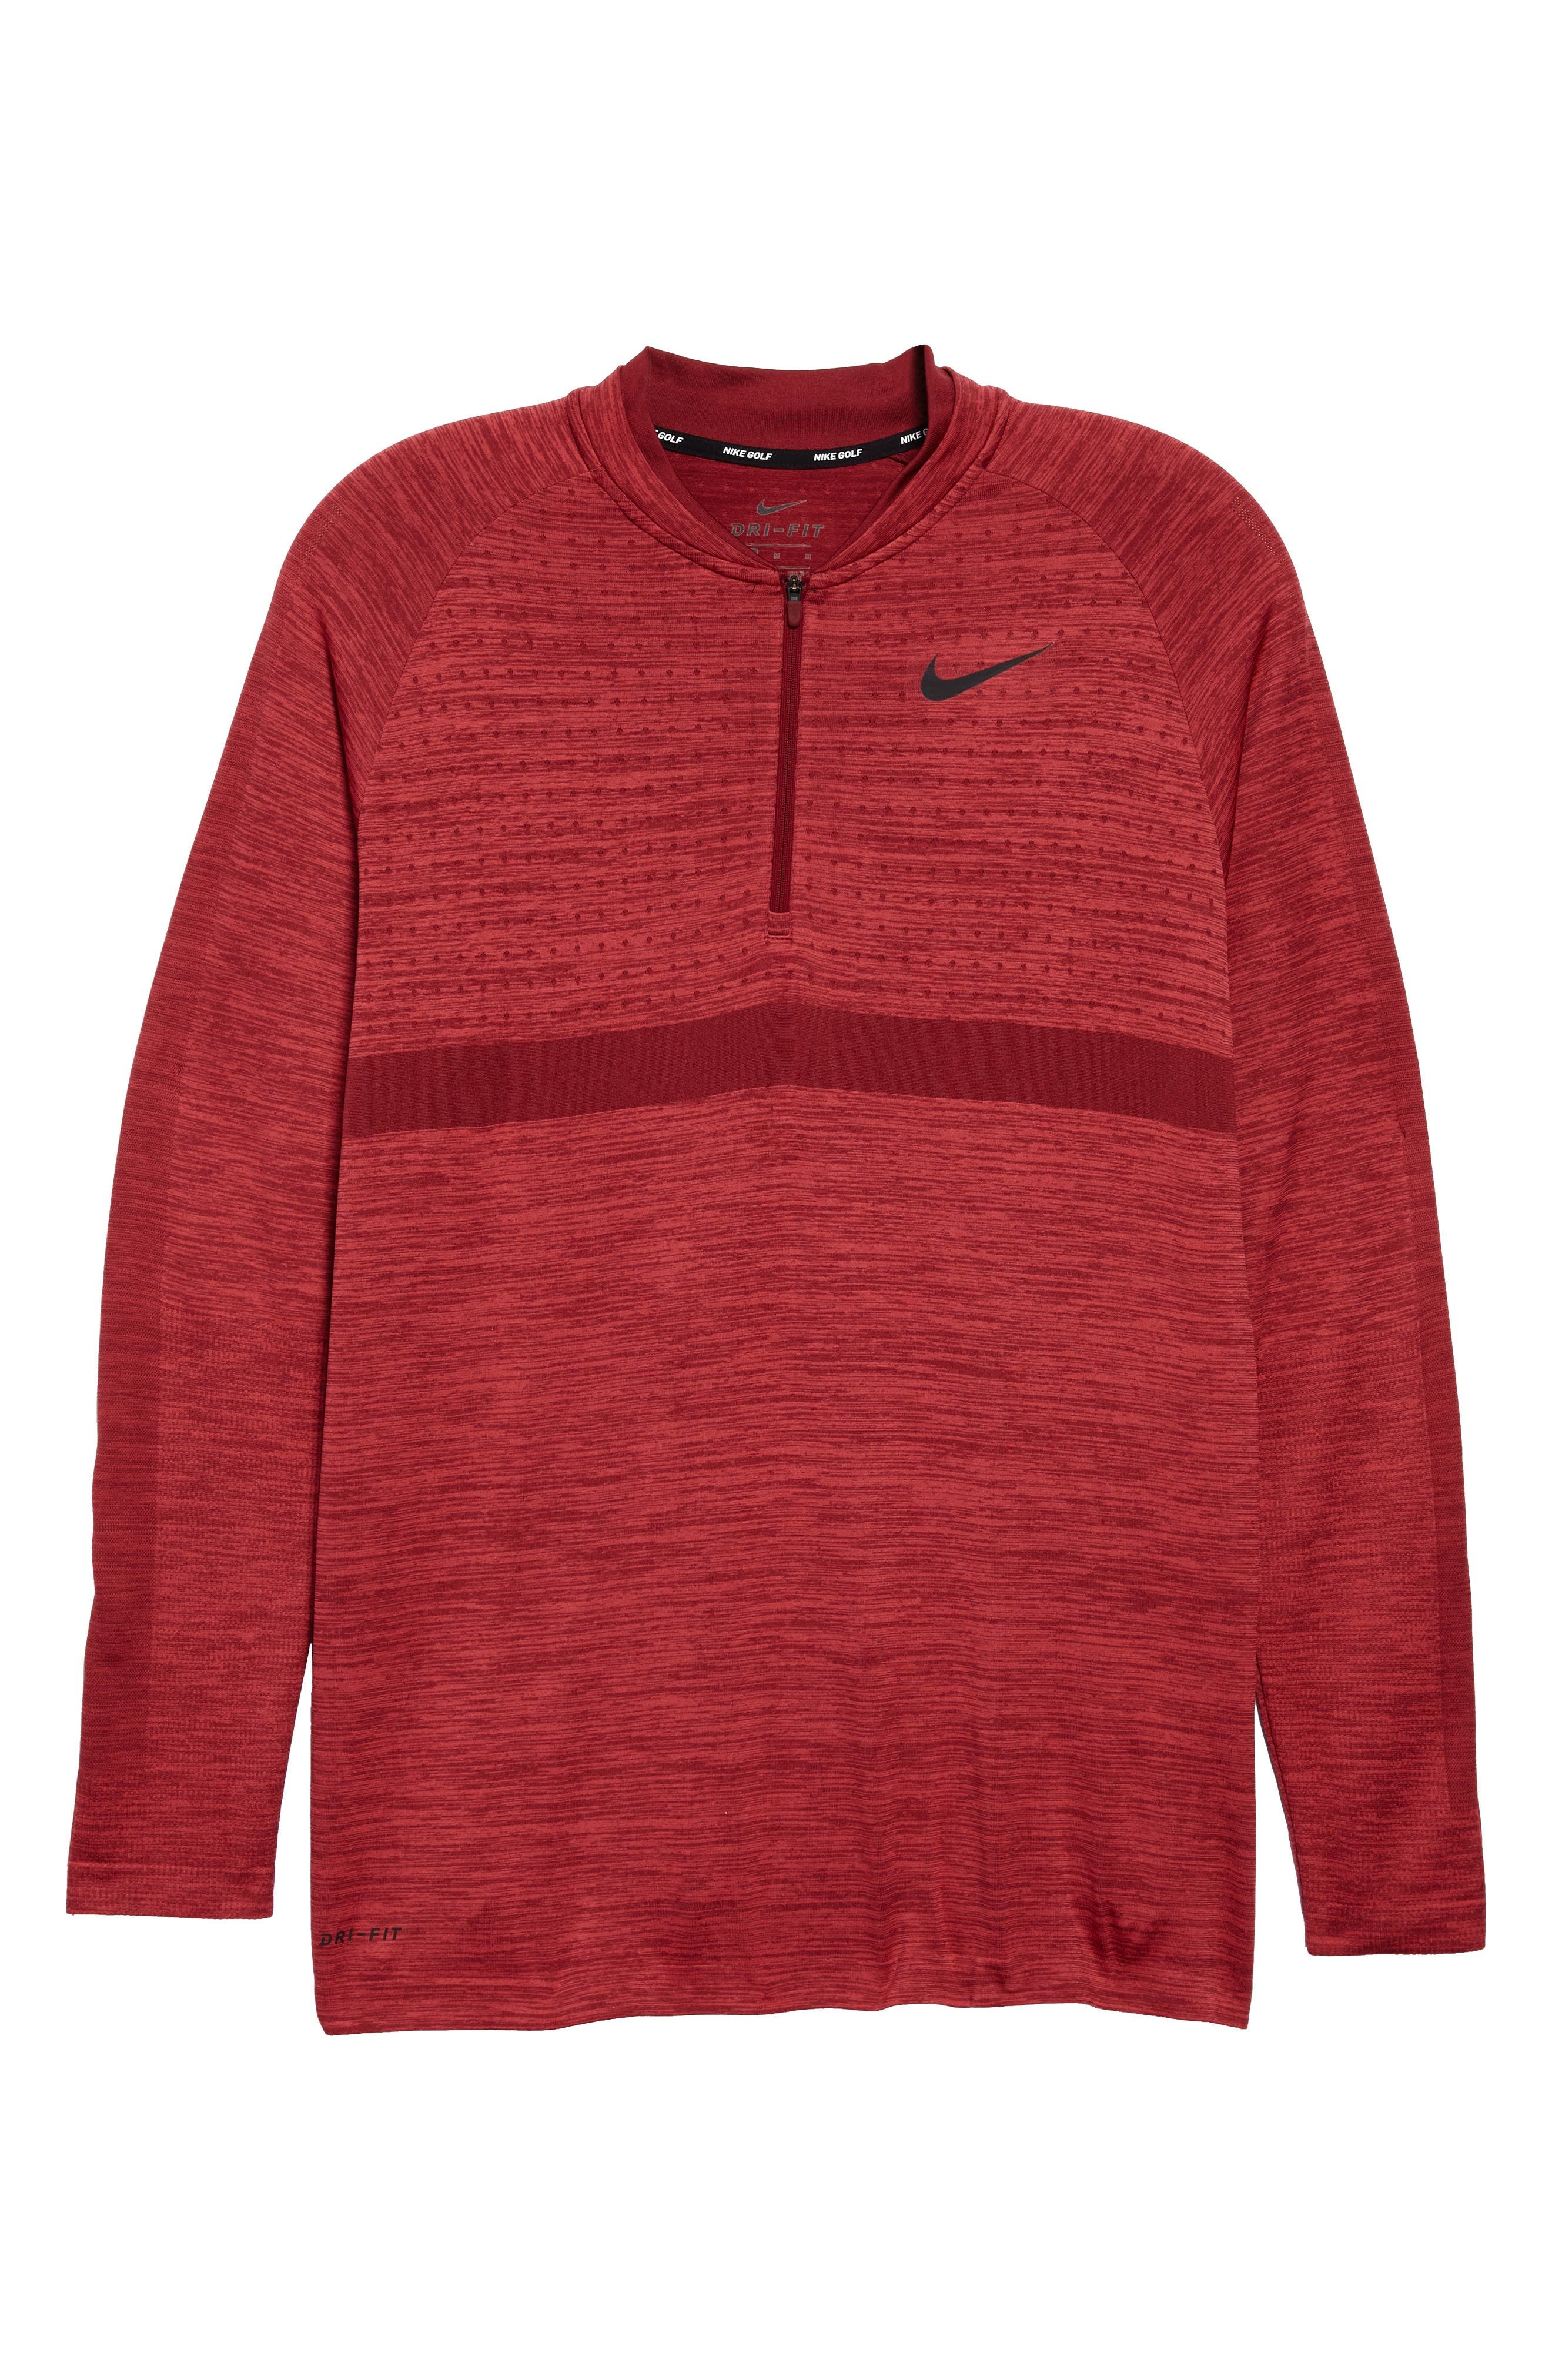 Dry Seamless Half Zip Golf Pullover,                             Alternate thumbnail 6, color,                             Tropical Pink/ Team Red/ Black